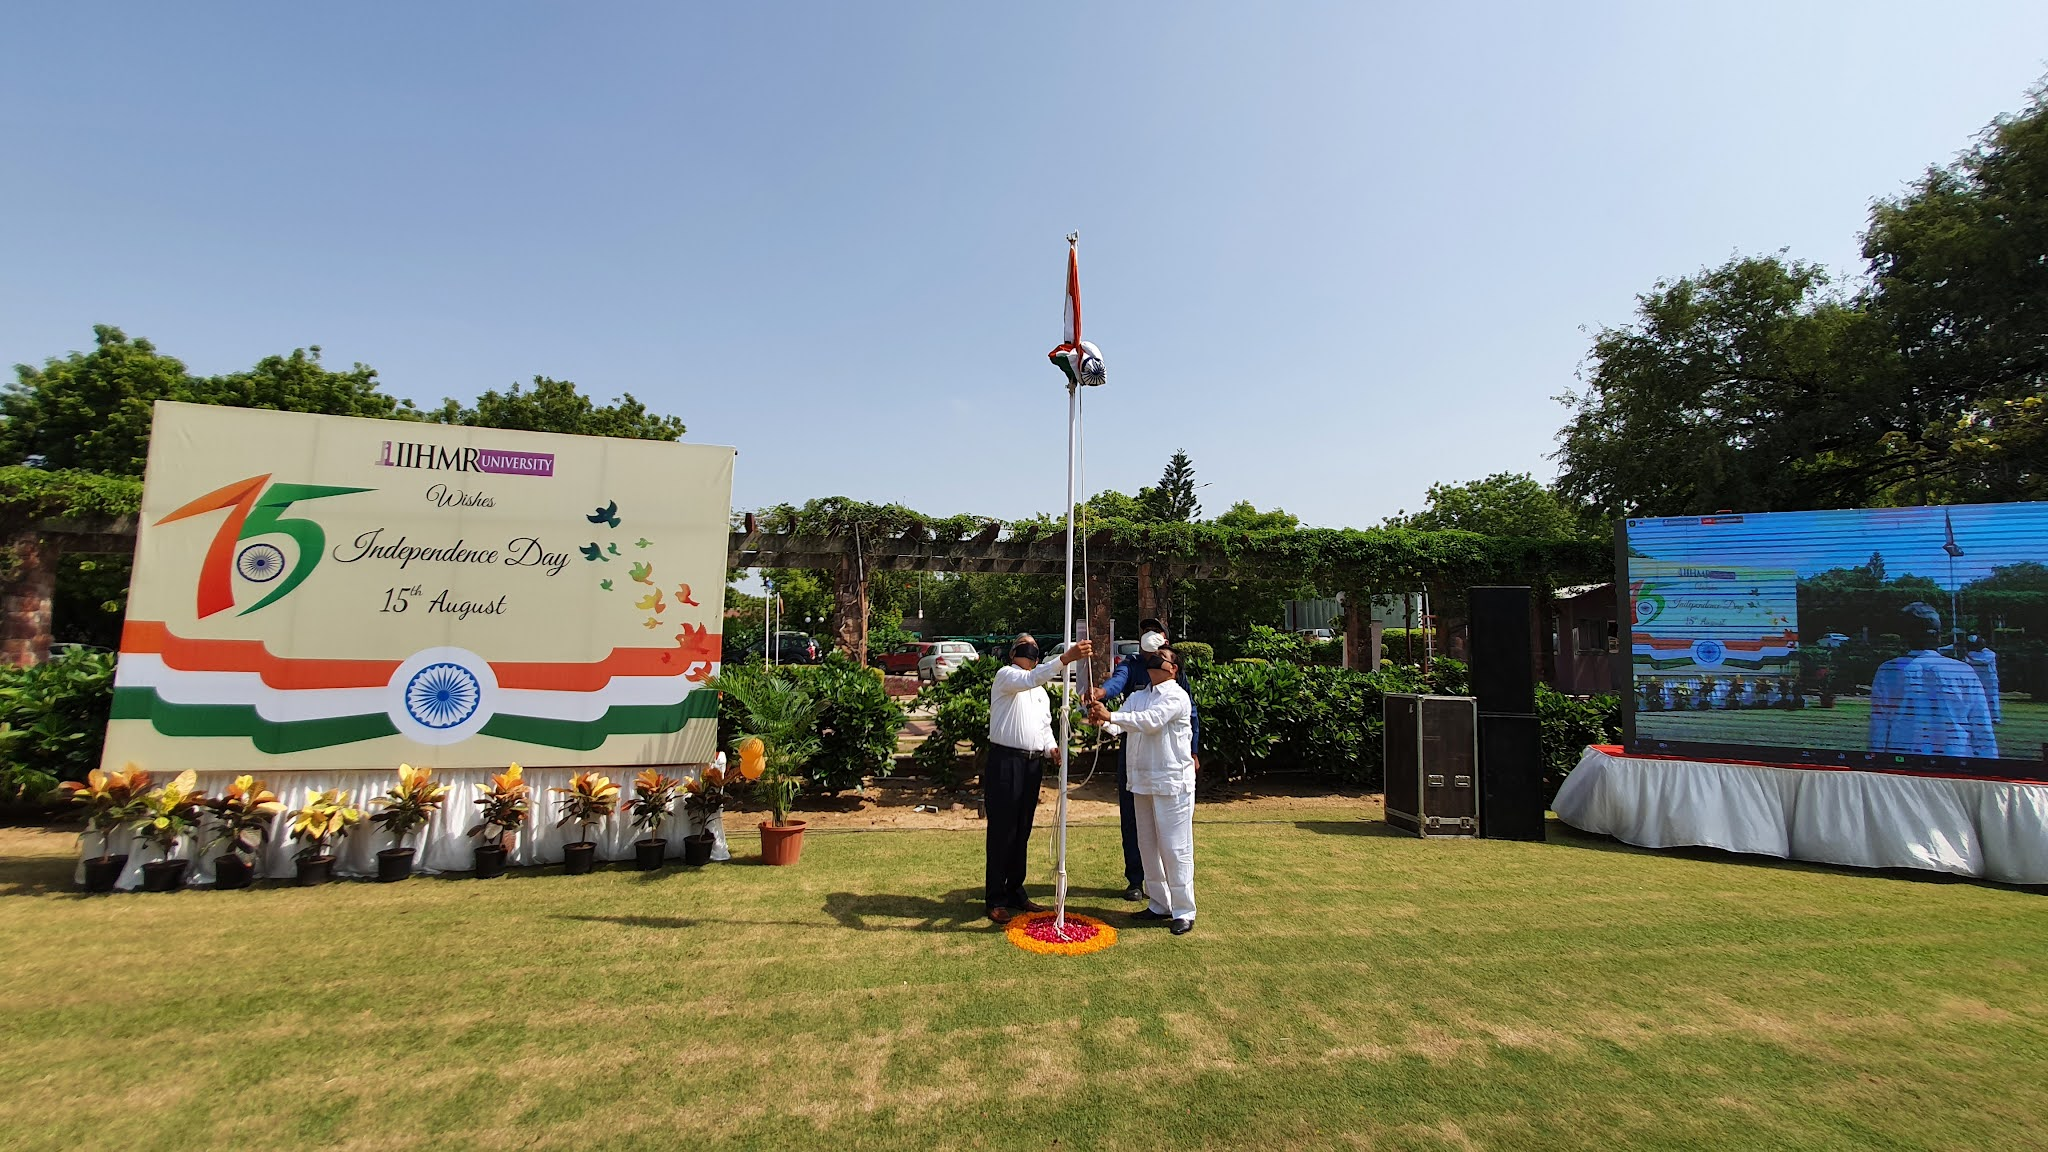 75th Independence Day Celebrated with a noble cause of tree plantation at IIHMR University, Jaipur